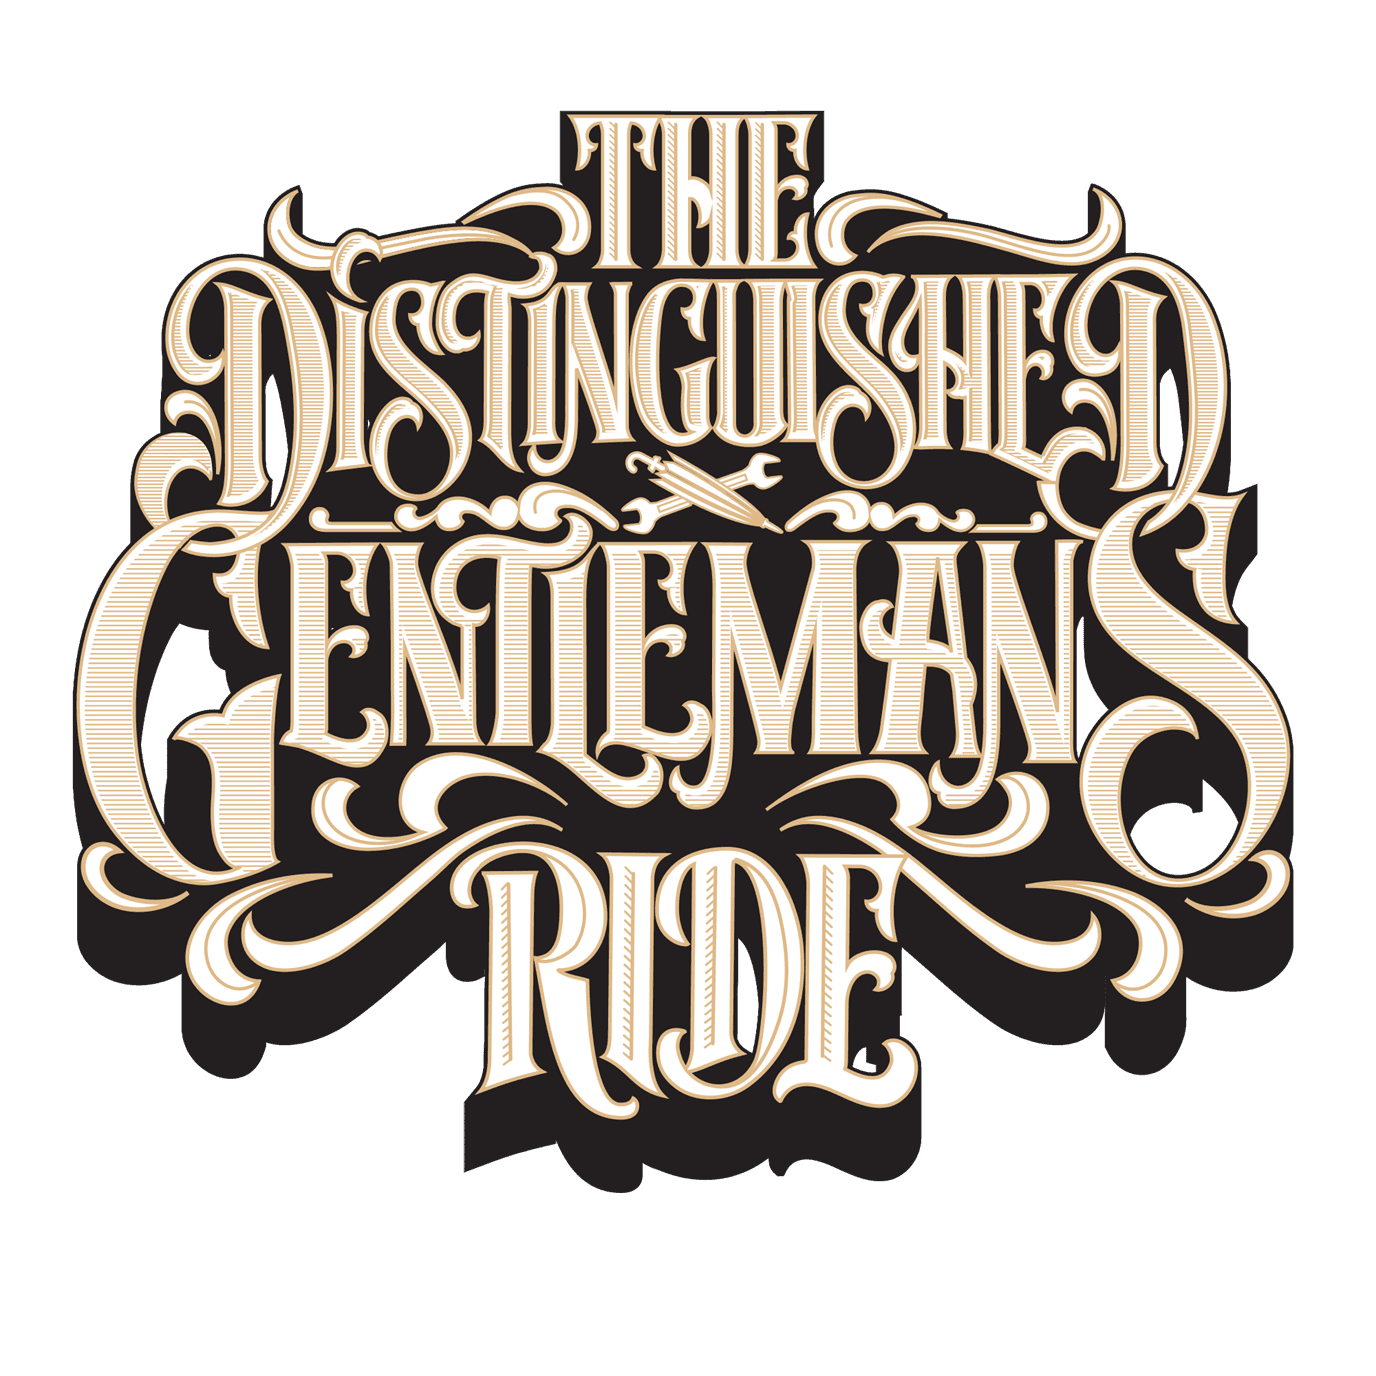 The Distinguished Gentlemans Ride 2016